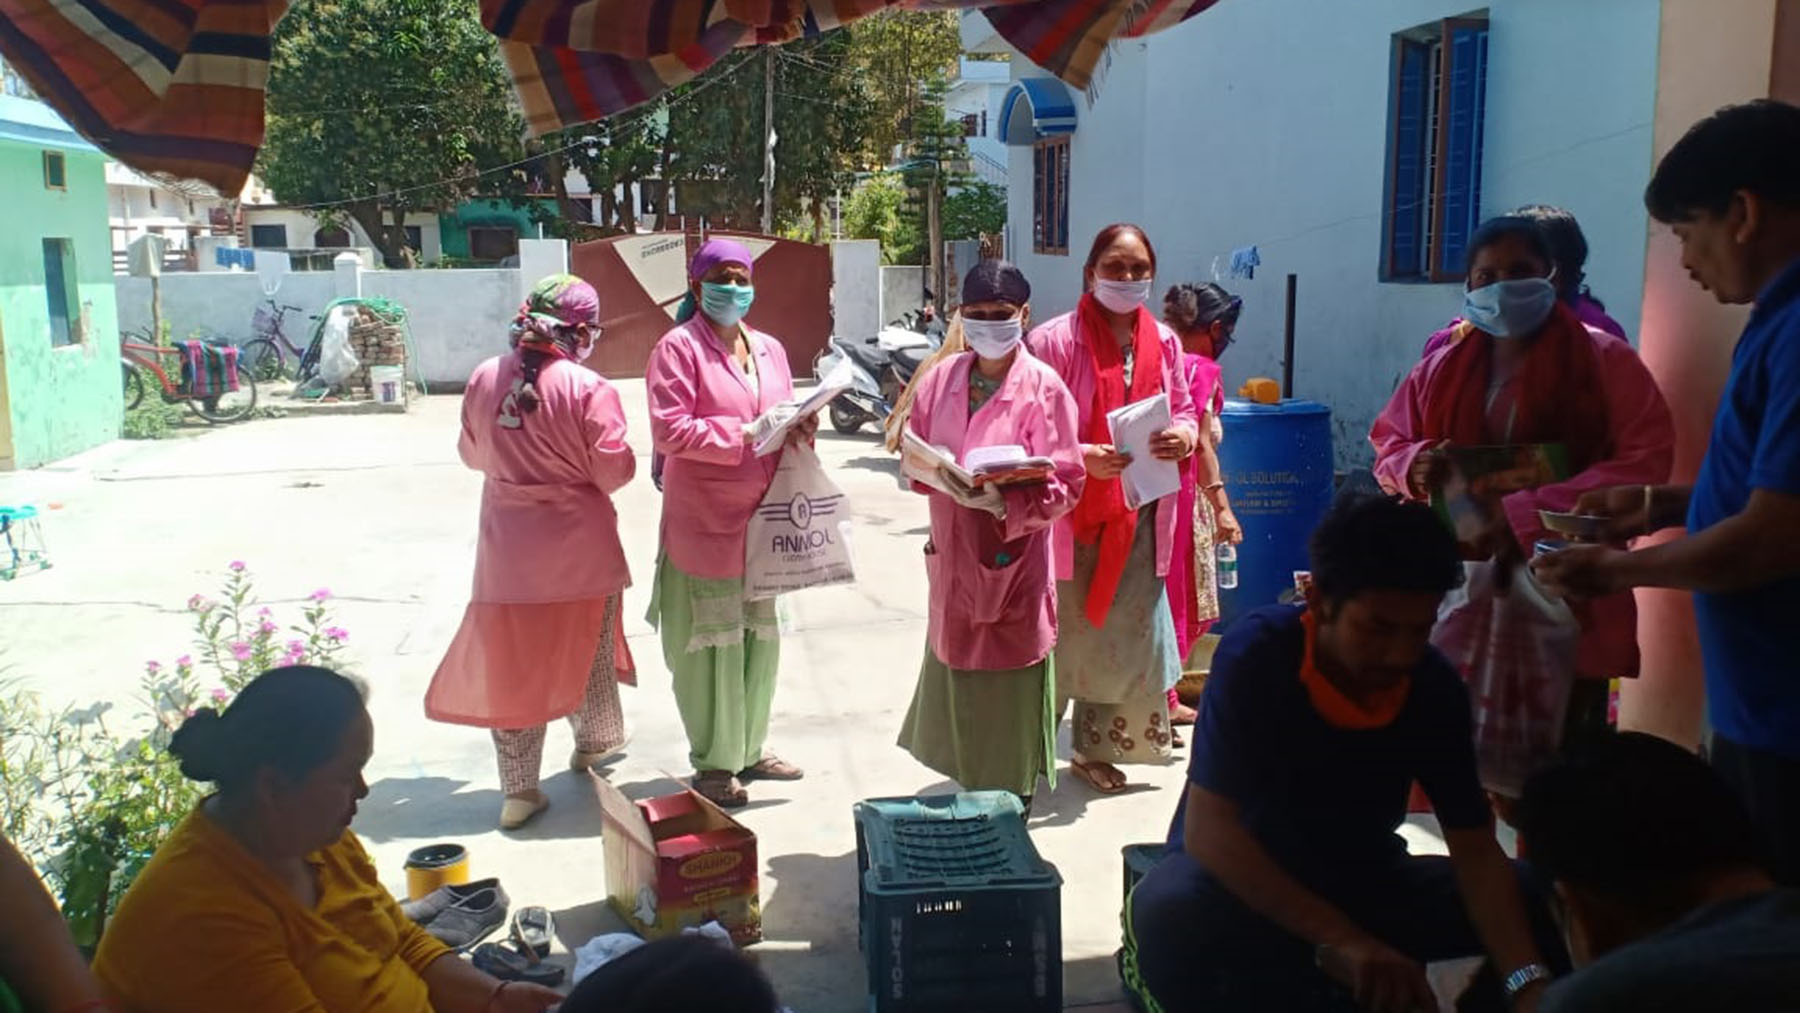 ASHA workers conduct Covid-19 surveys in the north Indian state of Uttarakhand. (Photo courtesy of the Uttarakhand ASHA Workers' Association)